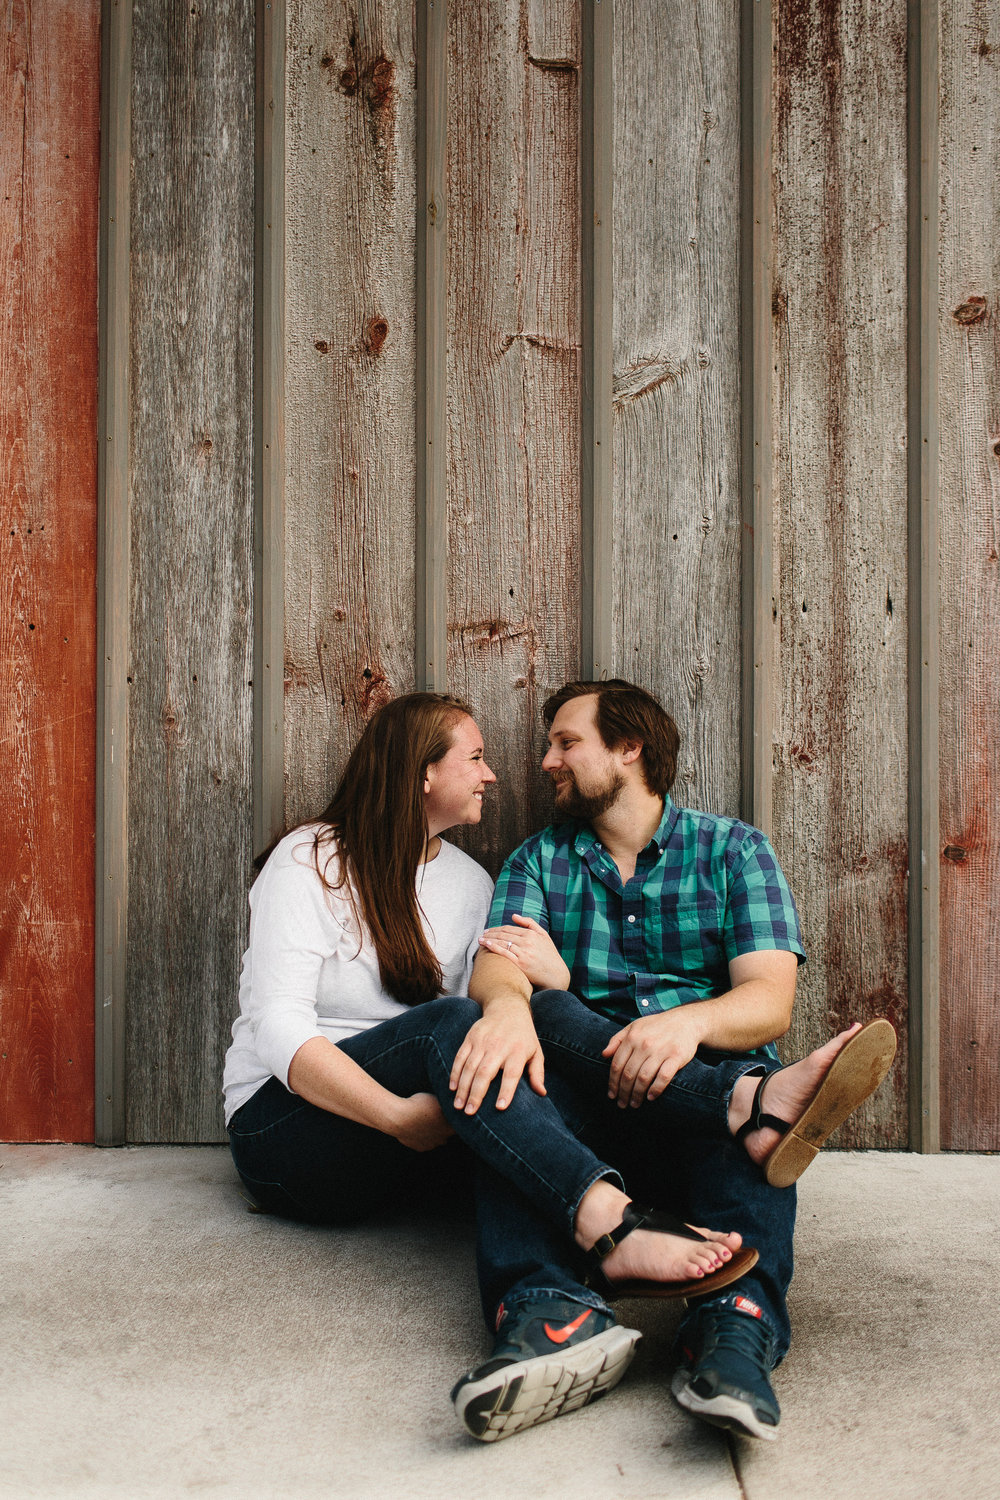 iowa_city_engagement_adventure_prairie_graduate_at_home_dog_couples_downtown_wilsons_orchard_1052.jpg